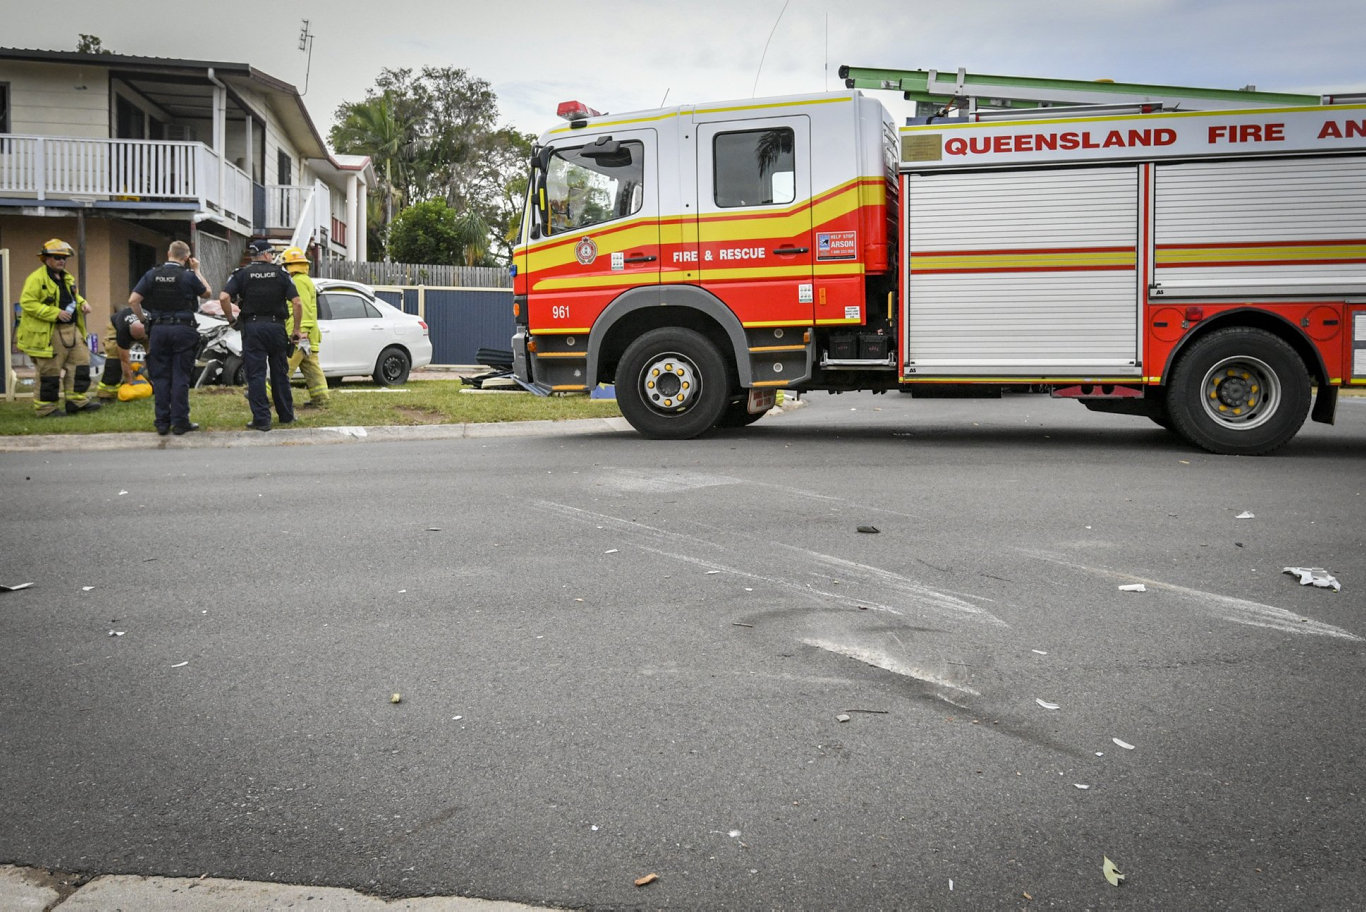 A woman in her 70s was transported to Gladstone Hospital after being trapped in her vehicle after it rolled on Malpas Street and damaged a fence.